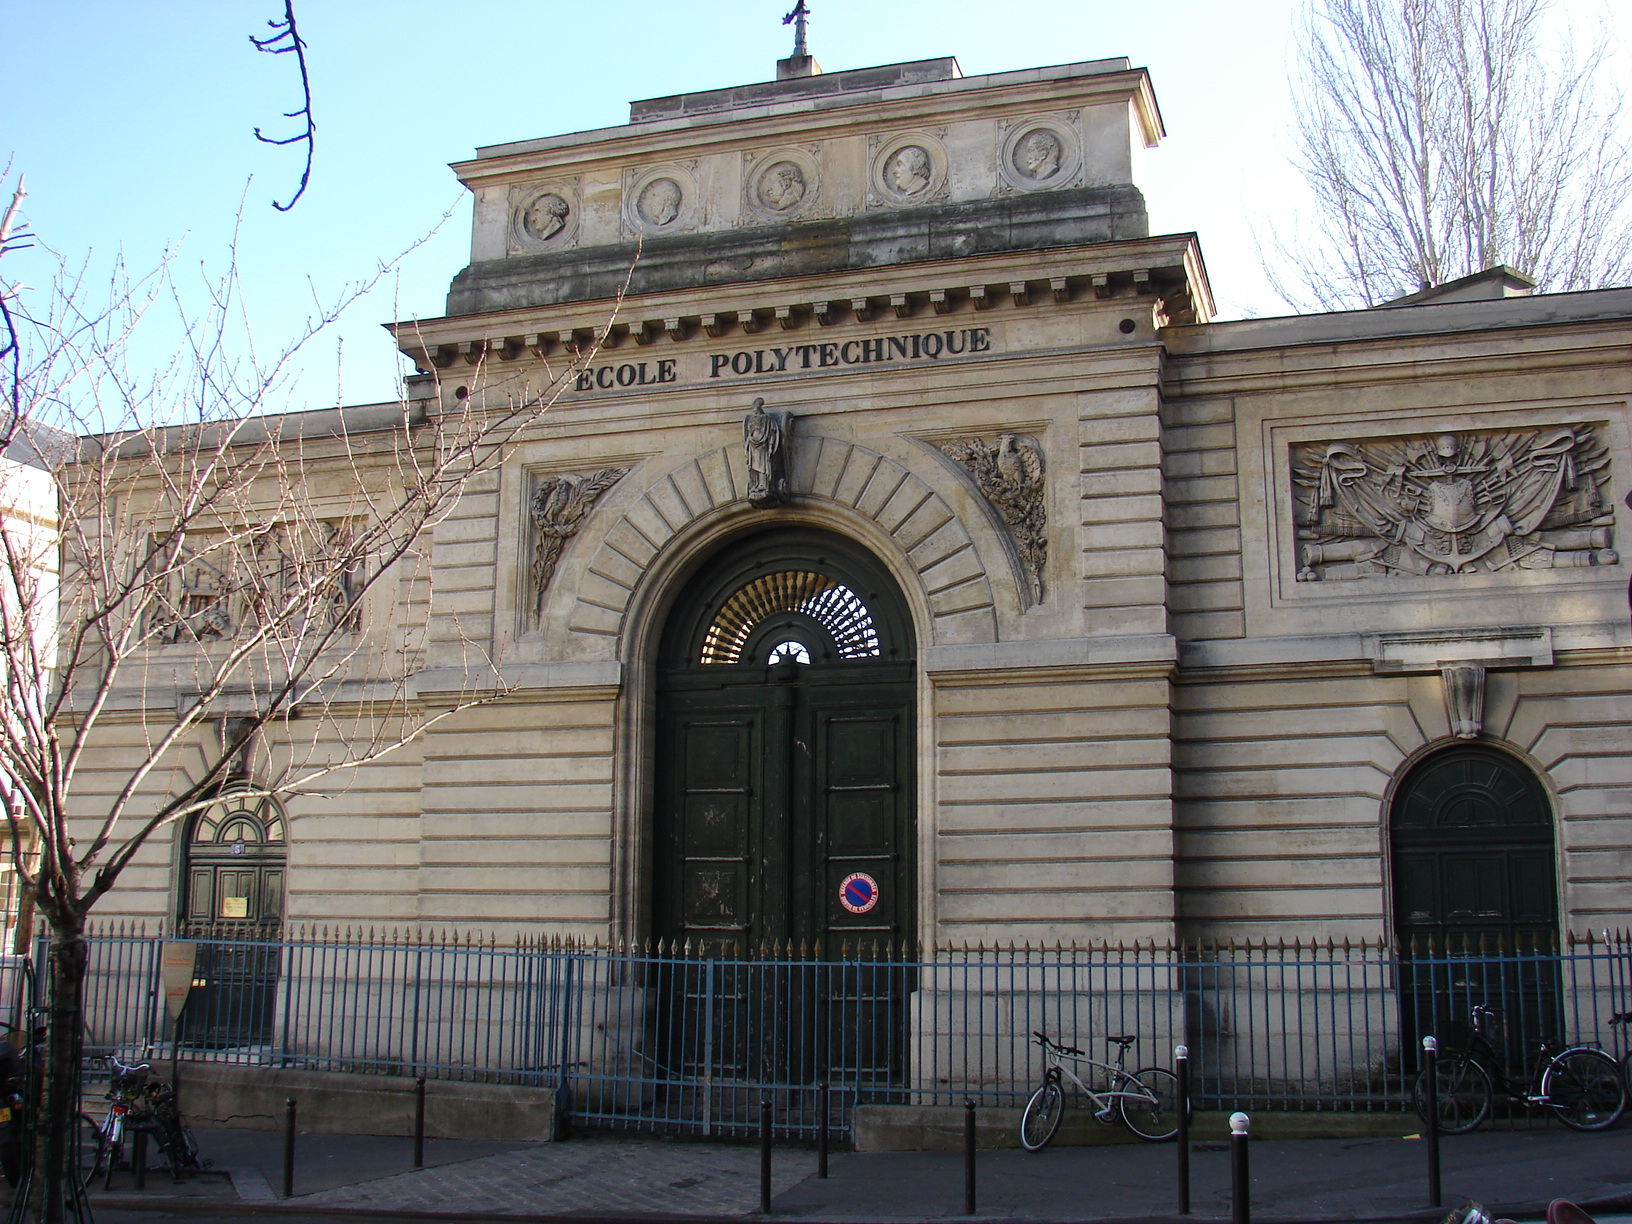 Ecole Polytechnique Entrance - Paris 5